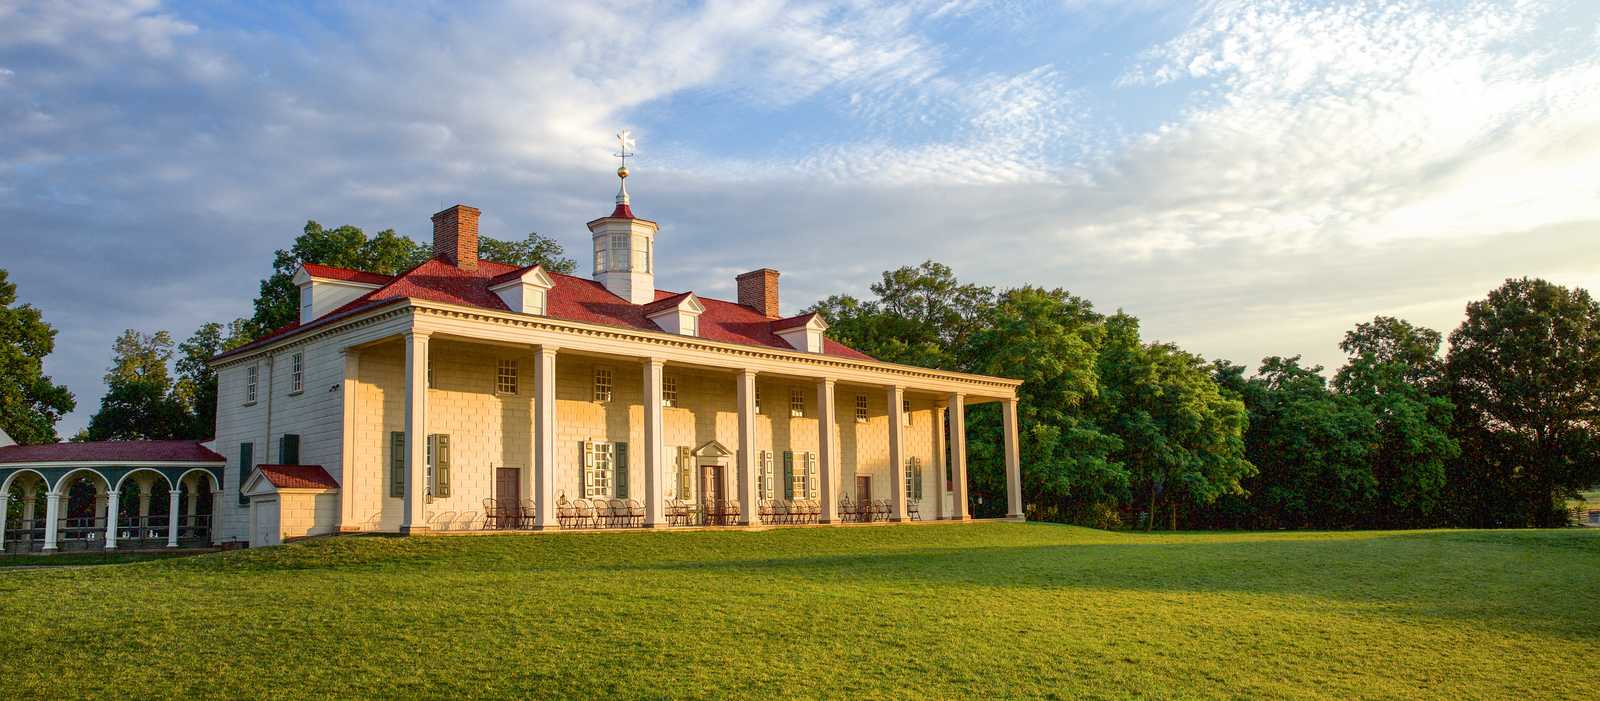 Der Landsitz Mount Vernon in Virginia